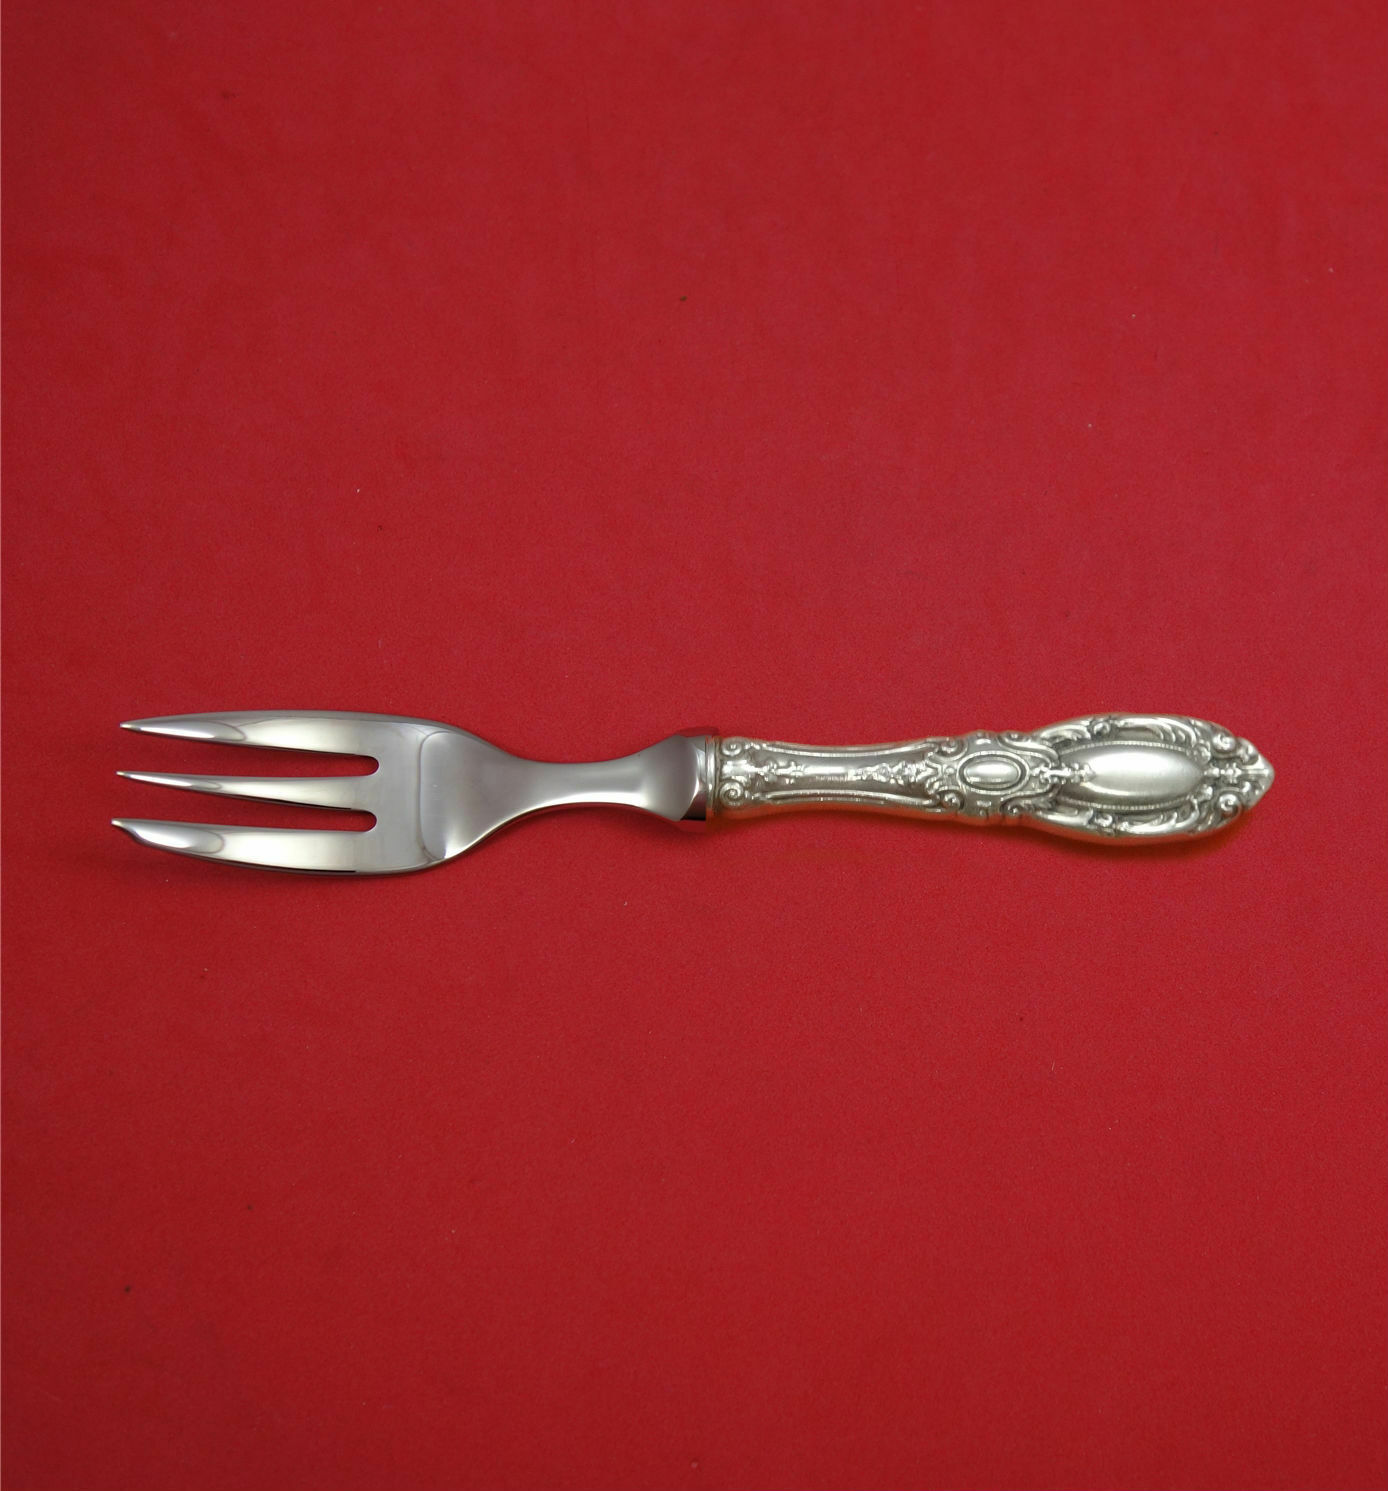 "Primary image for King Richard by Towle Sterling Silver Caviar Fork 3-Tine HHWS 6 1/4"" Custom Made"